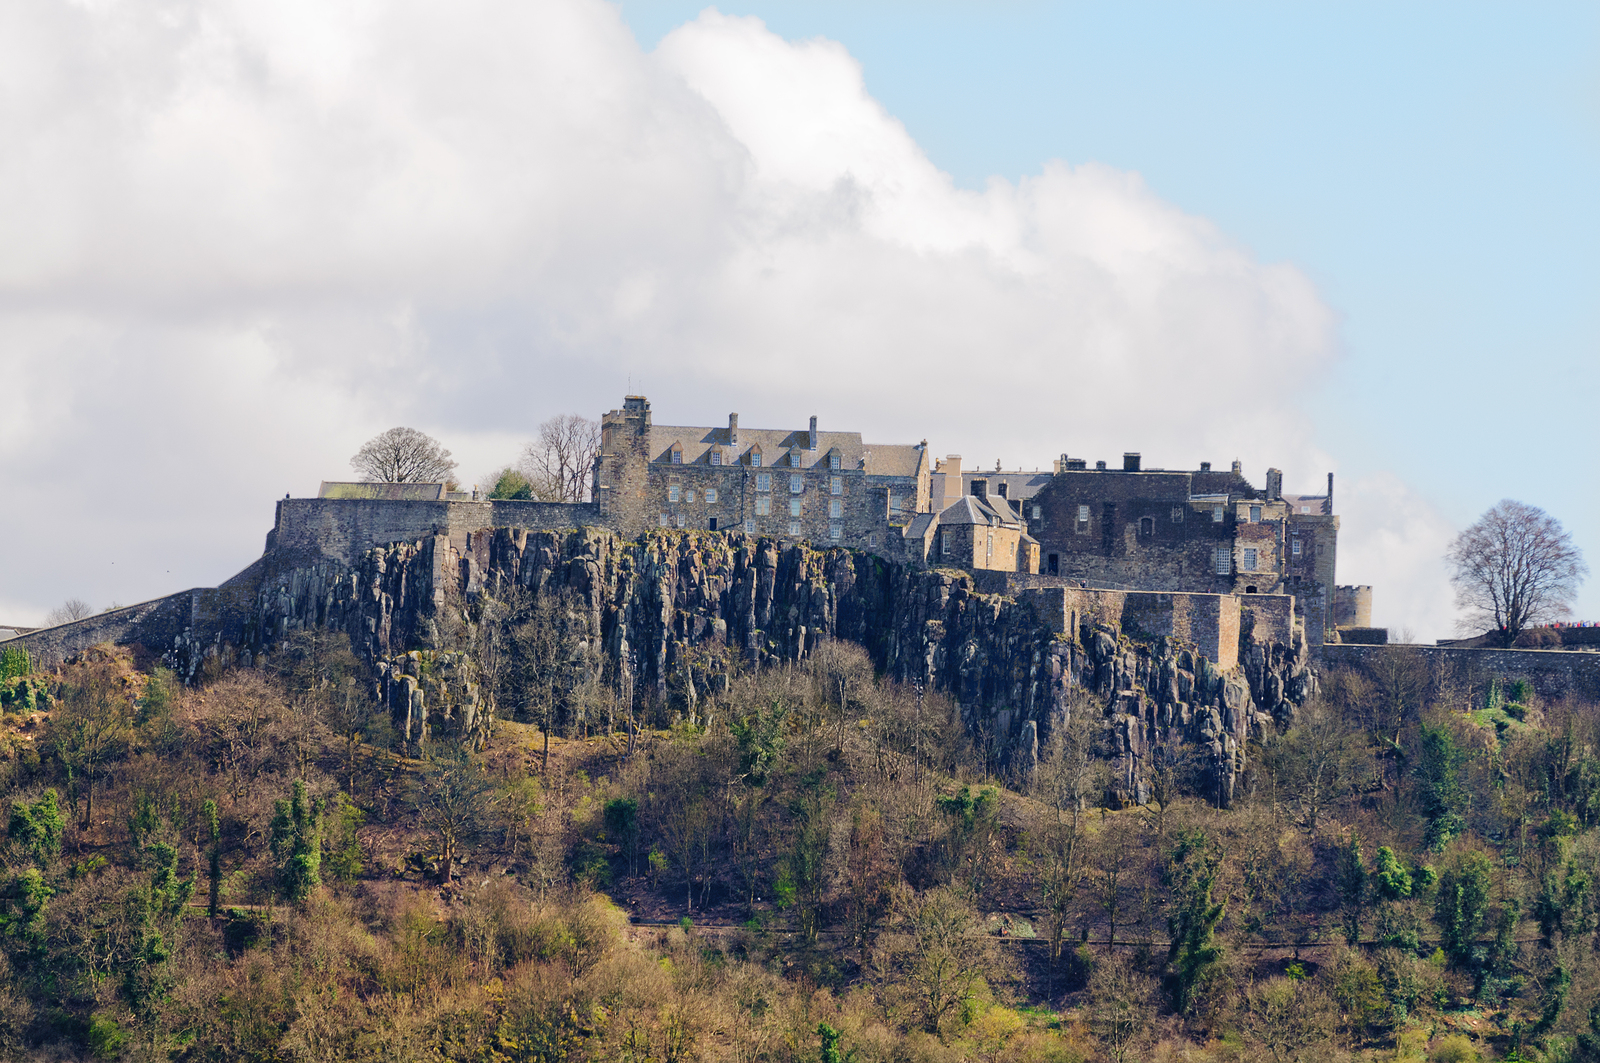 Drop by Stirling Castle in central Scotland on your private Scottish Tour